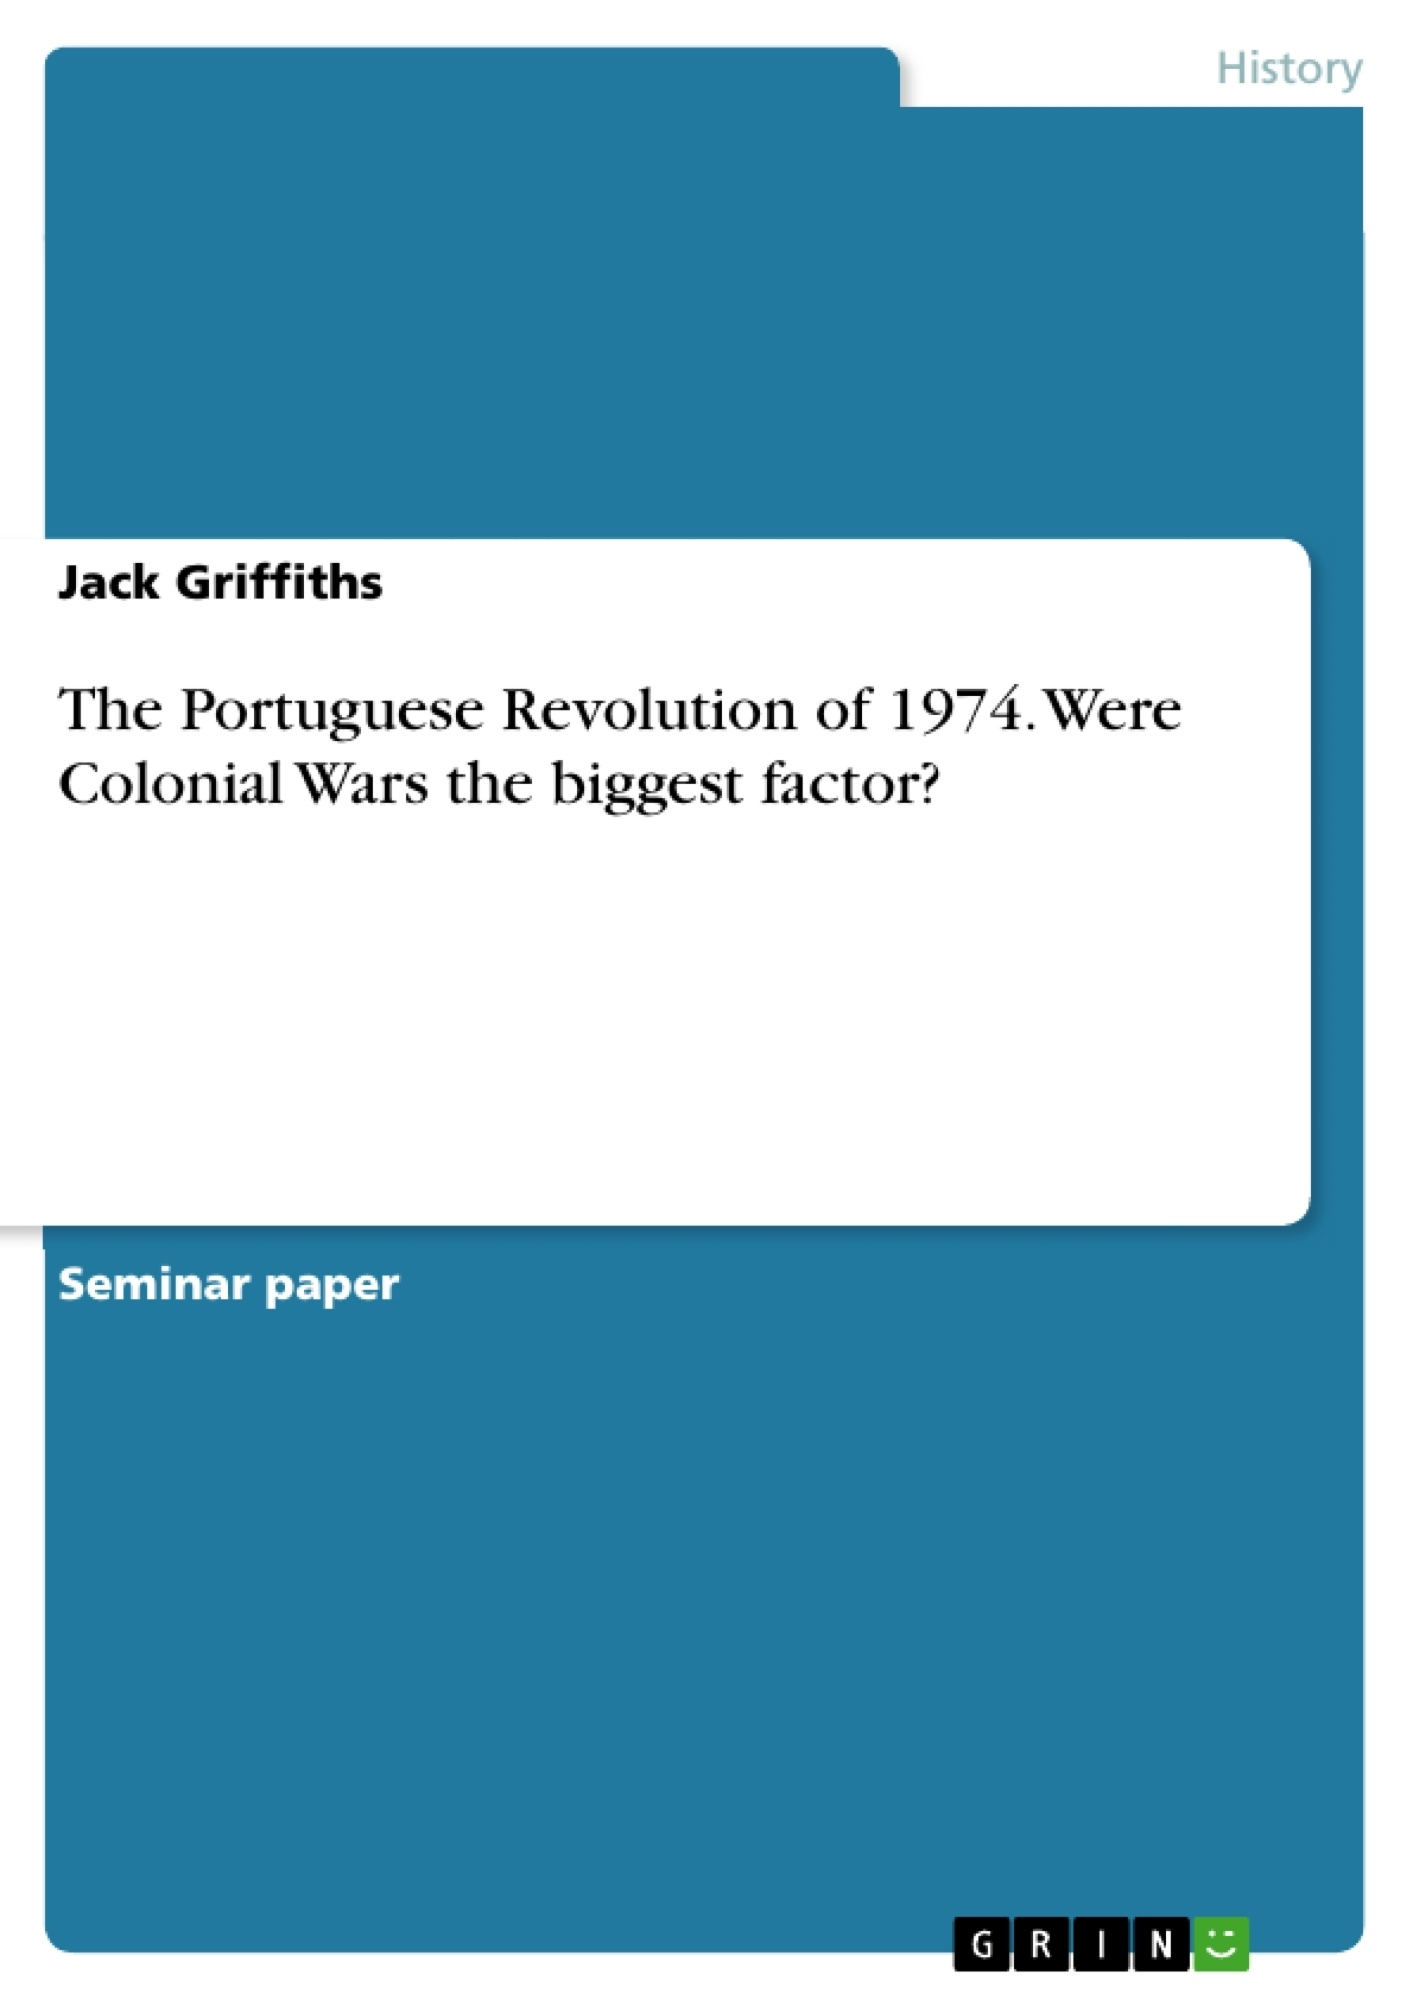 Title: The Portuguese Revolution of 1974. Were Colonial Wars the biggest factor?